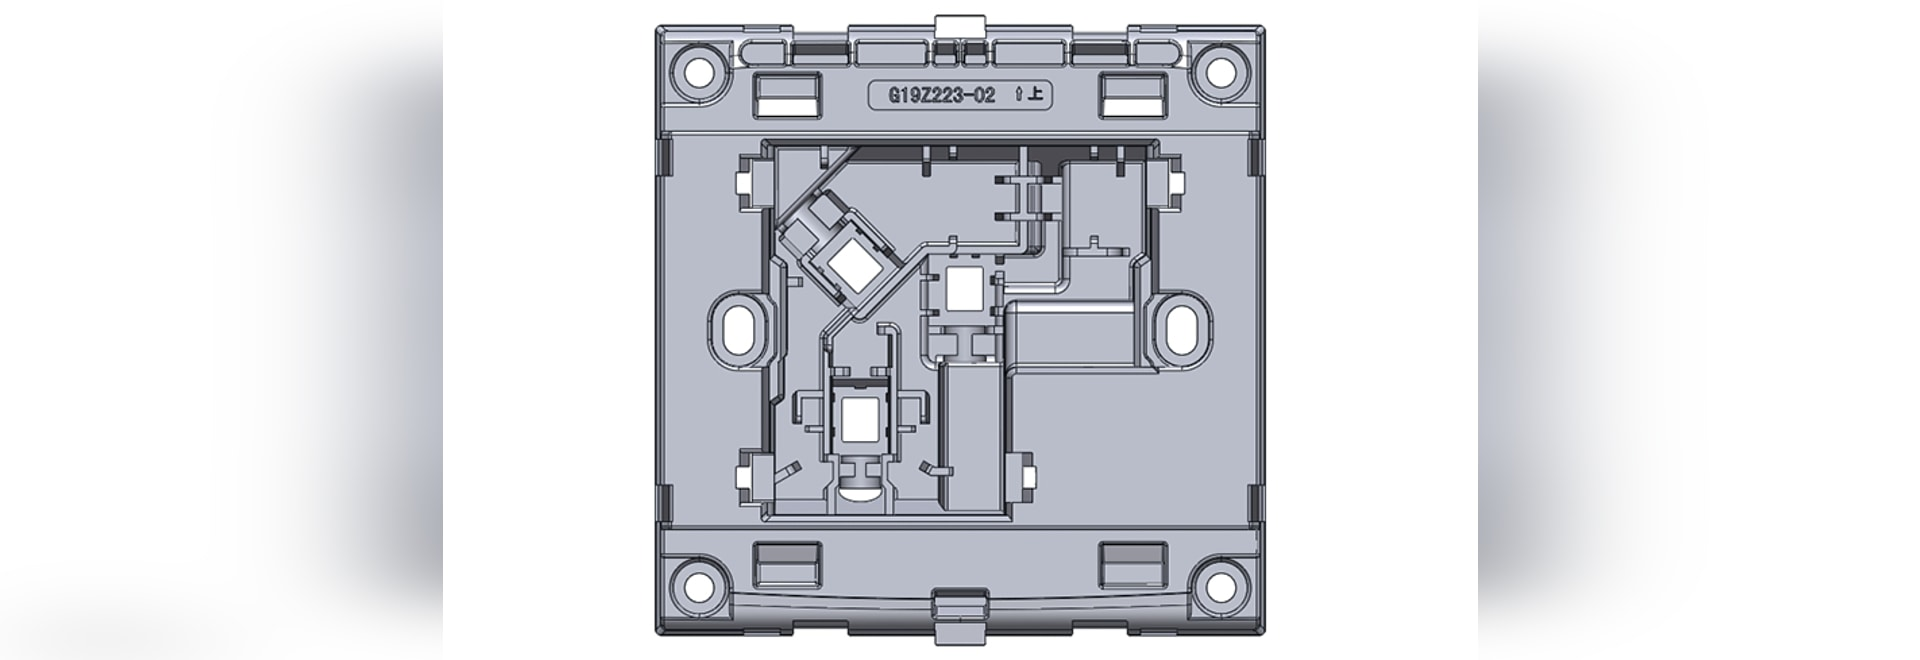 Inspection Requirements: thickness of socket and parts' assembly dimensions